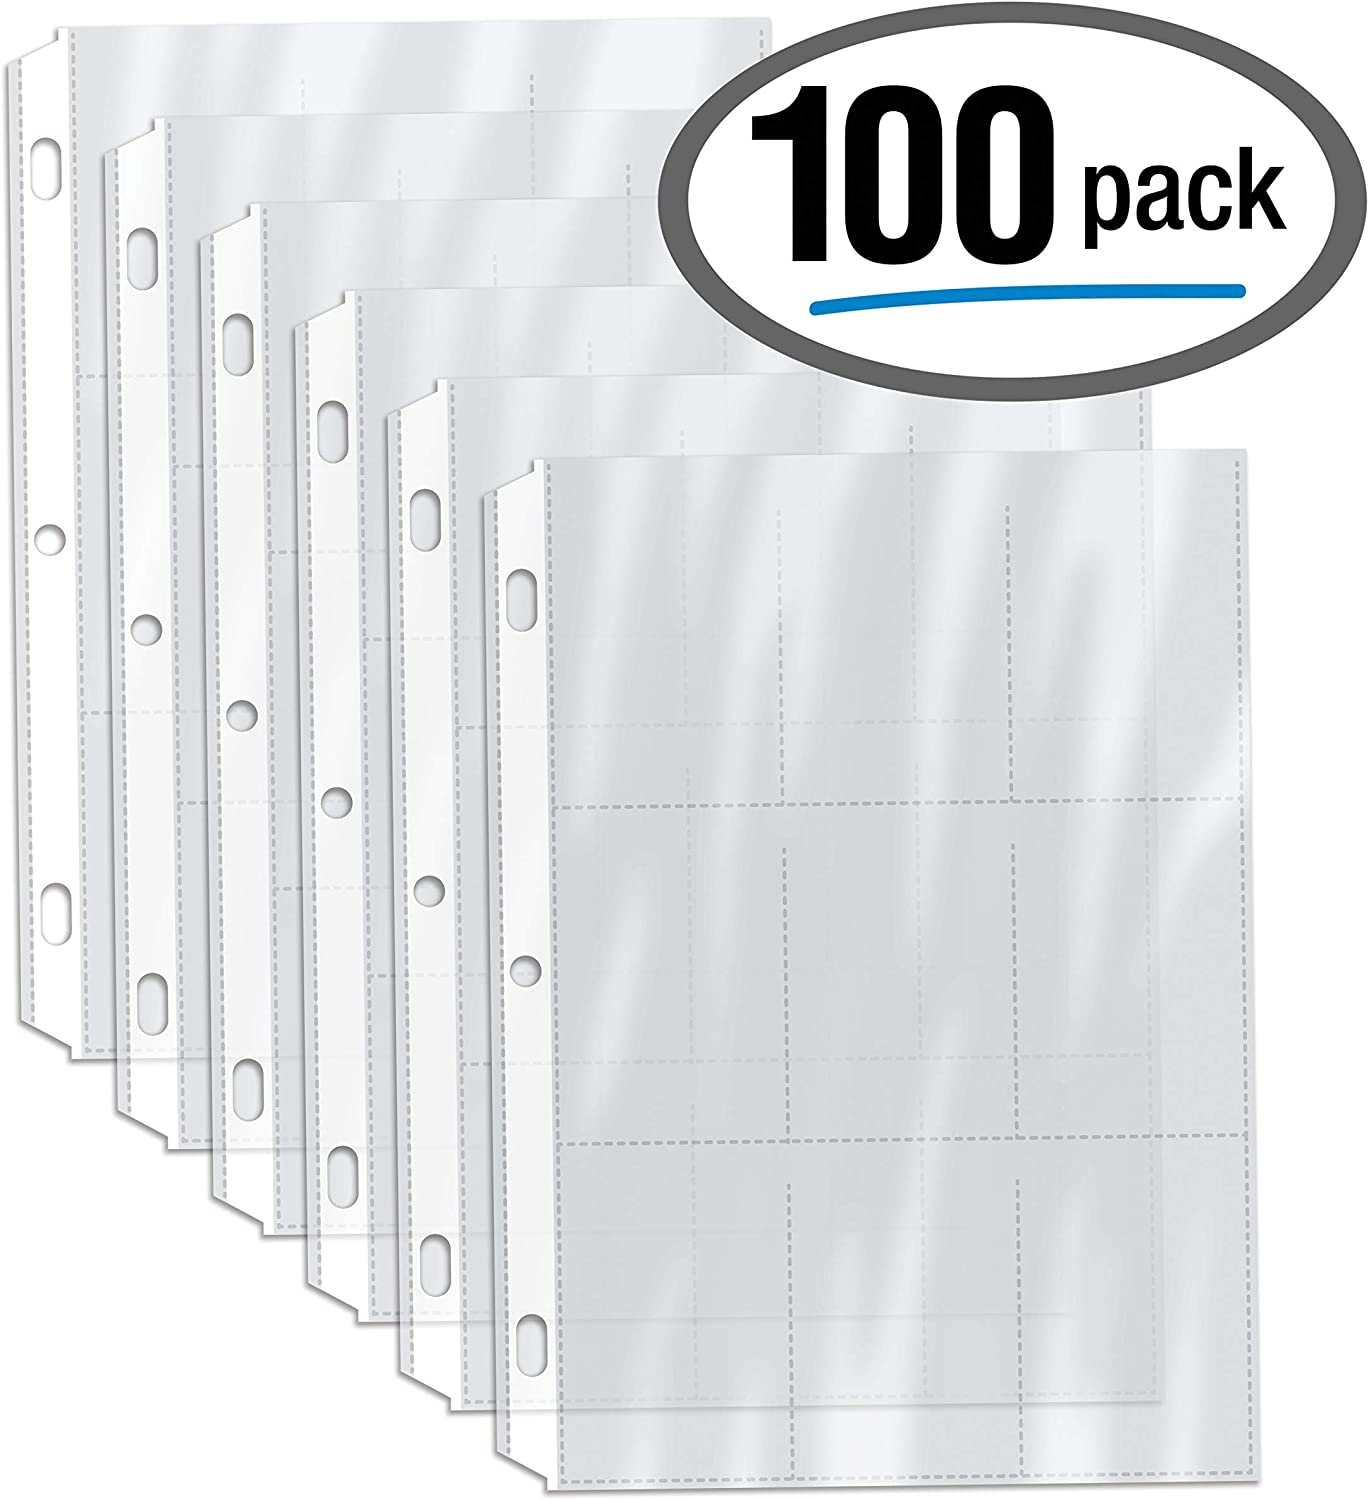 100/Kasten Clear Heavyweight Trading Card Sleeve Pages, 9 Pockets Per Sheet, 900 Pockets, 3 Ring Binder Sheets, durch Gold Seal, 100 Count